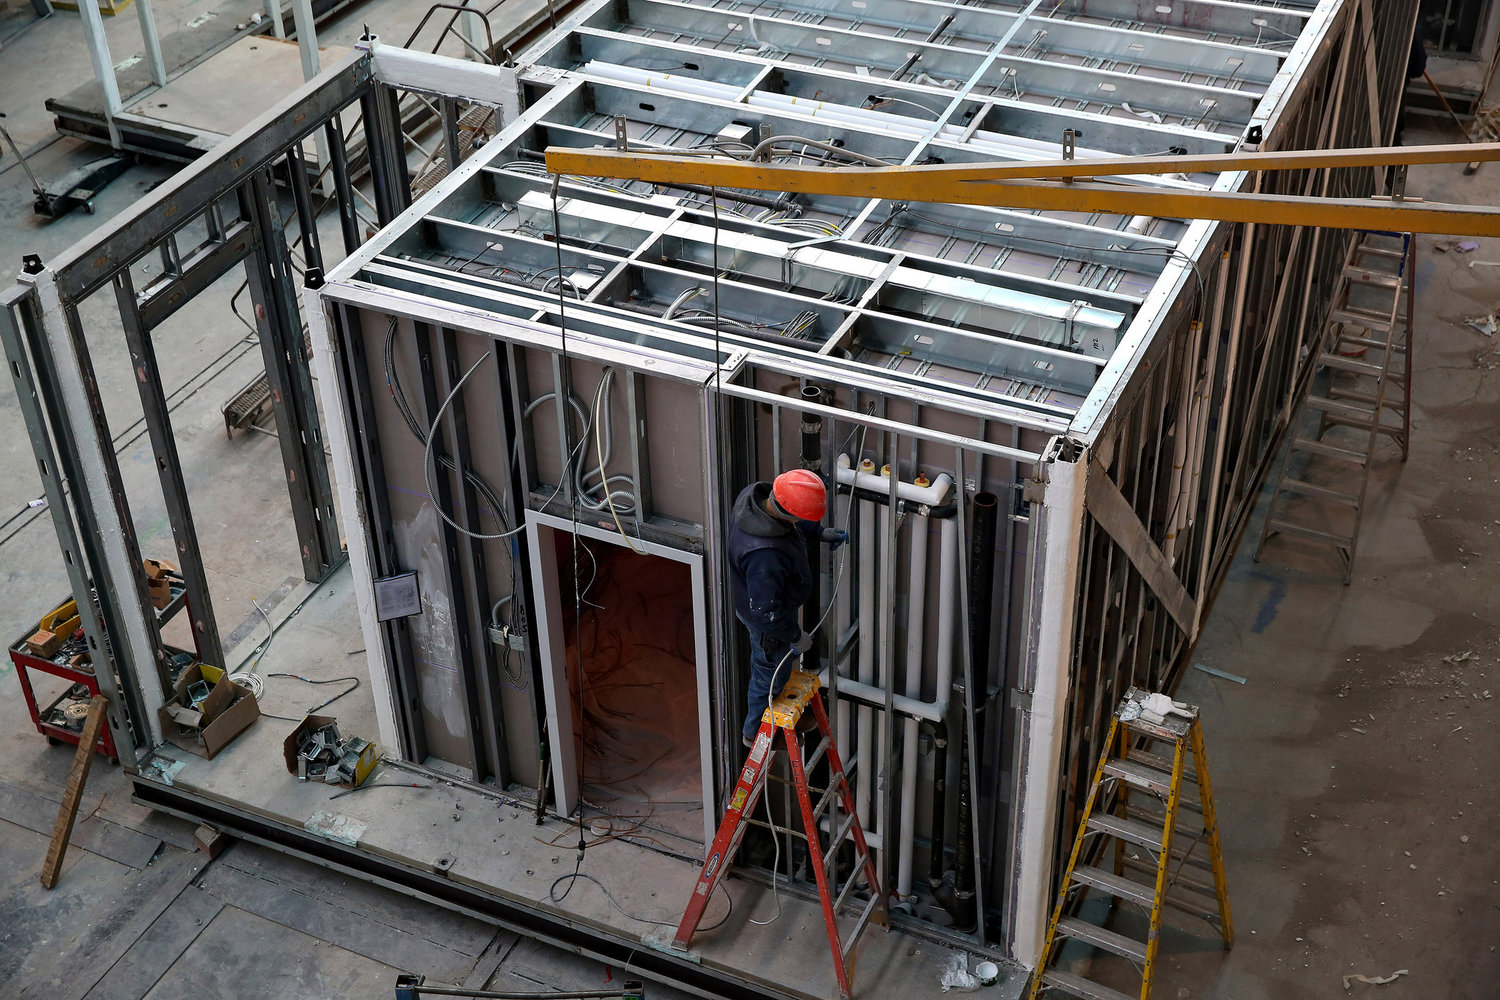 Plumbing is installed into open exterior walls. Open walls allow this type of work to be done at the same time as interior finish work.